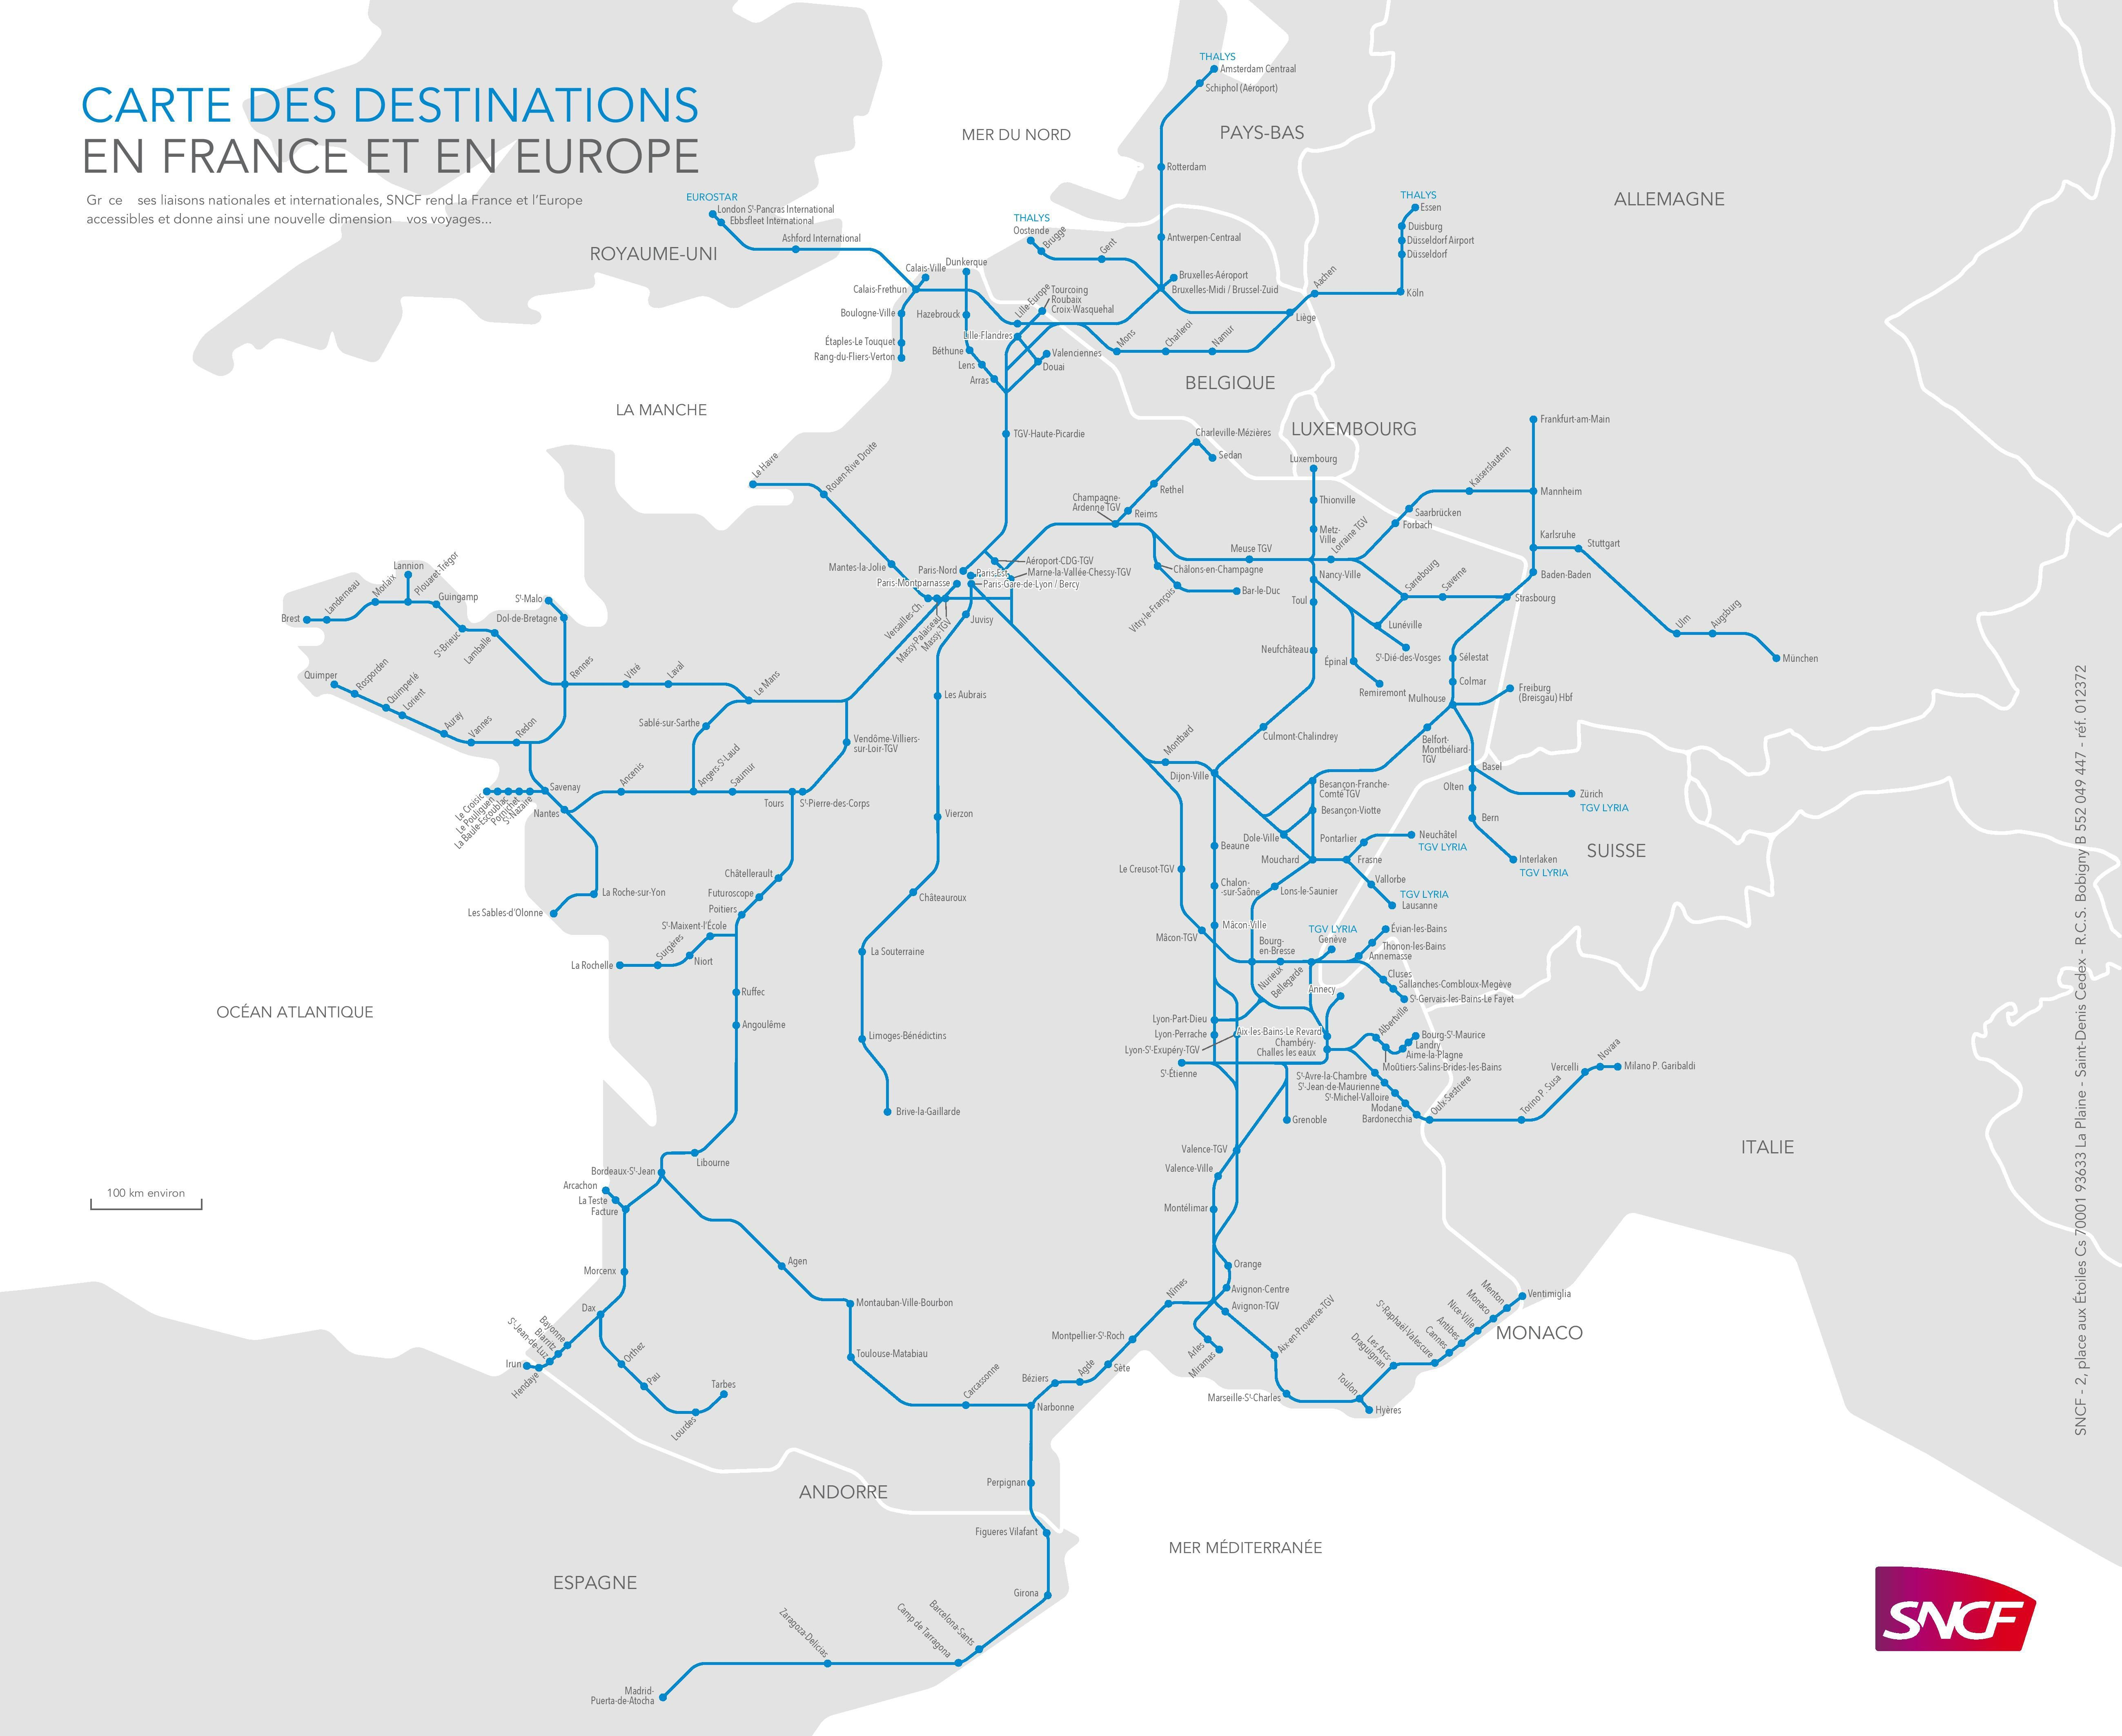 How To Plan Your Trip Through France On Tgv Day Trip From Paris